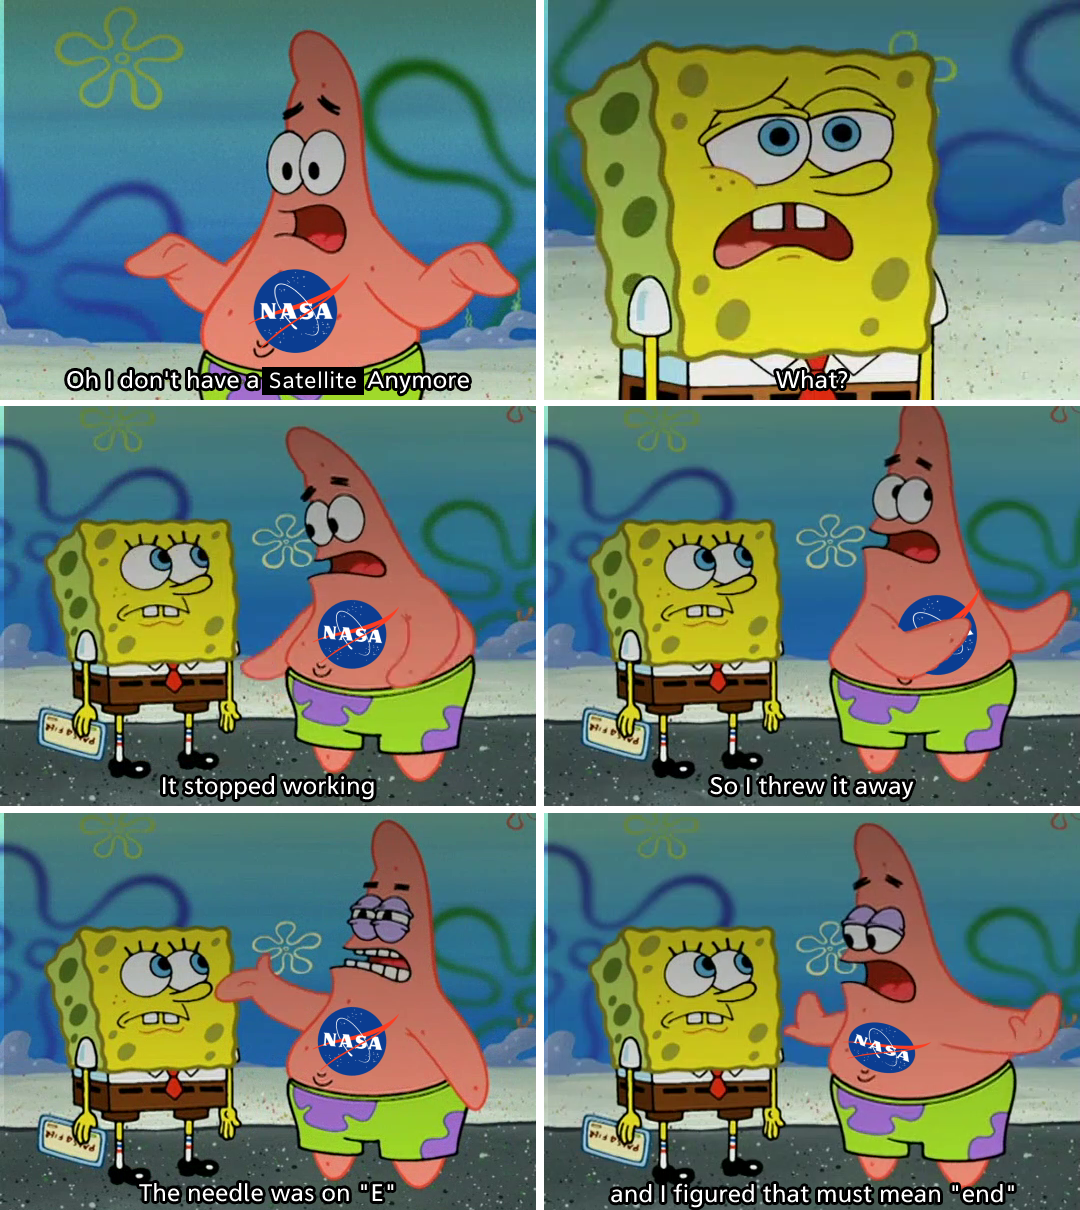 fun fact most satellites stop working just cuz they ran out of fuel r bikinibottomtwitter spongebob squarepants know your meme satellites stop working just cuz